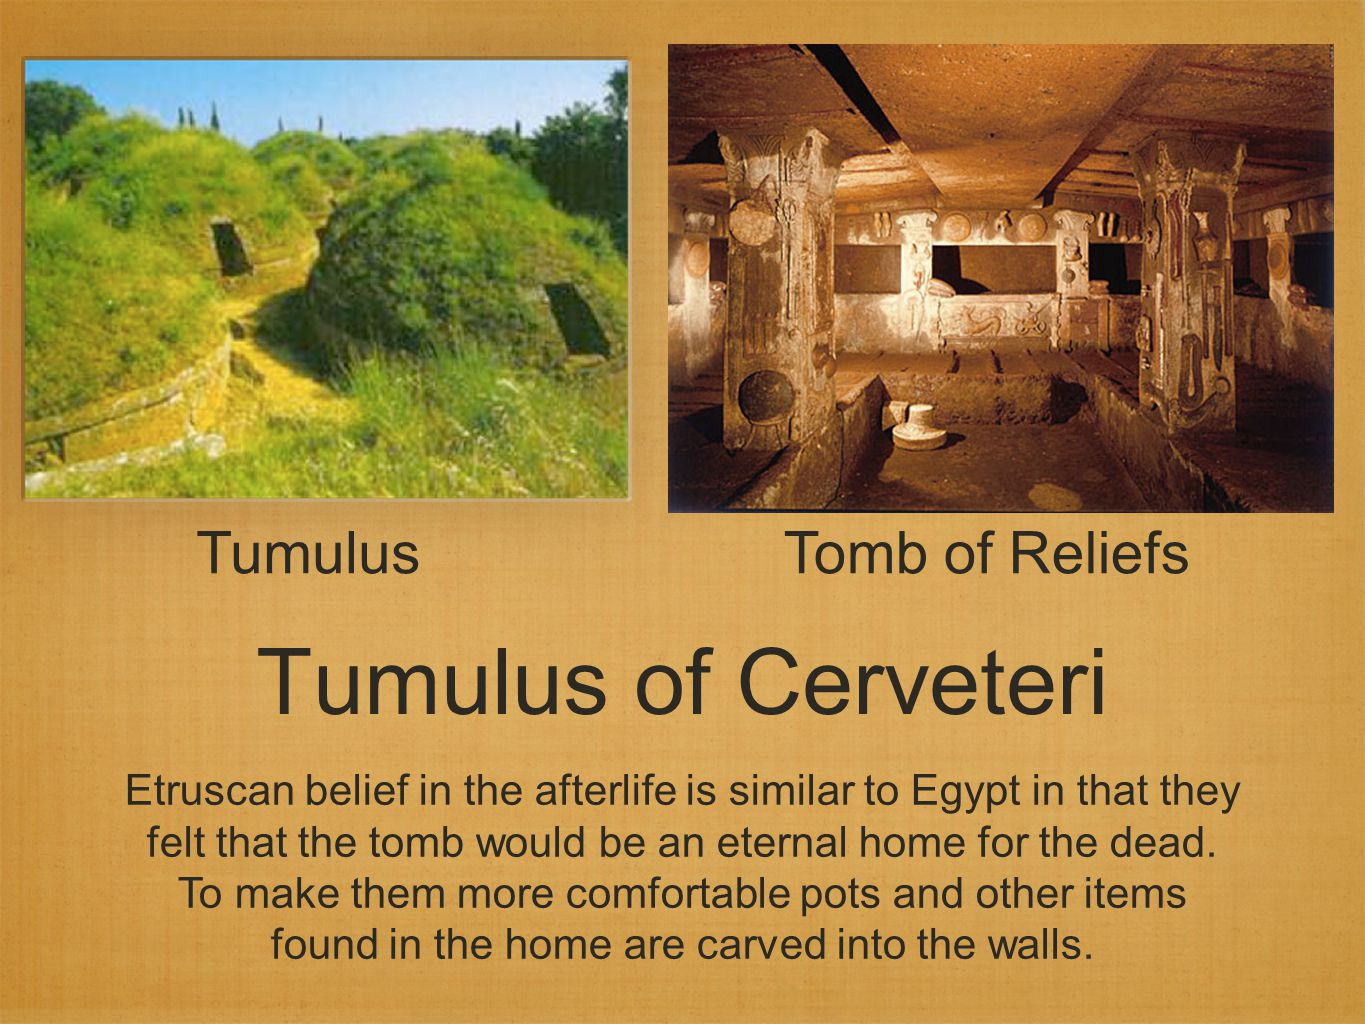 Tumulus of Cerveteri Tomb of Reliefs Etruscan belief in the afterlife is similar to Egypt in that they felt that the tomb would be an eternal home for the dead.